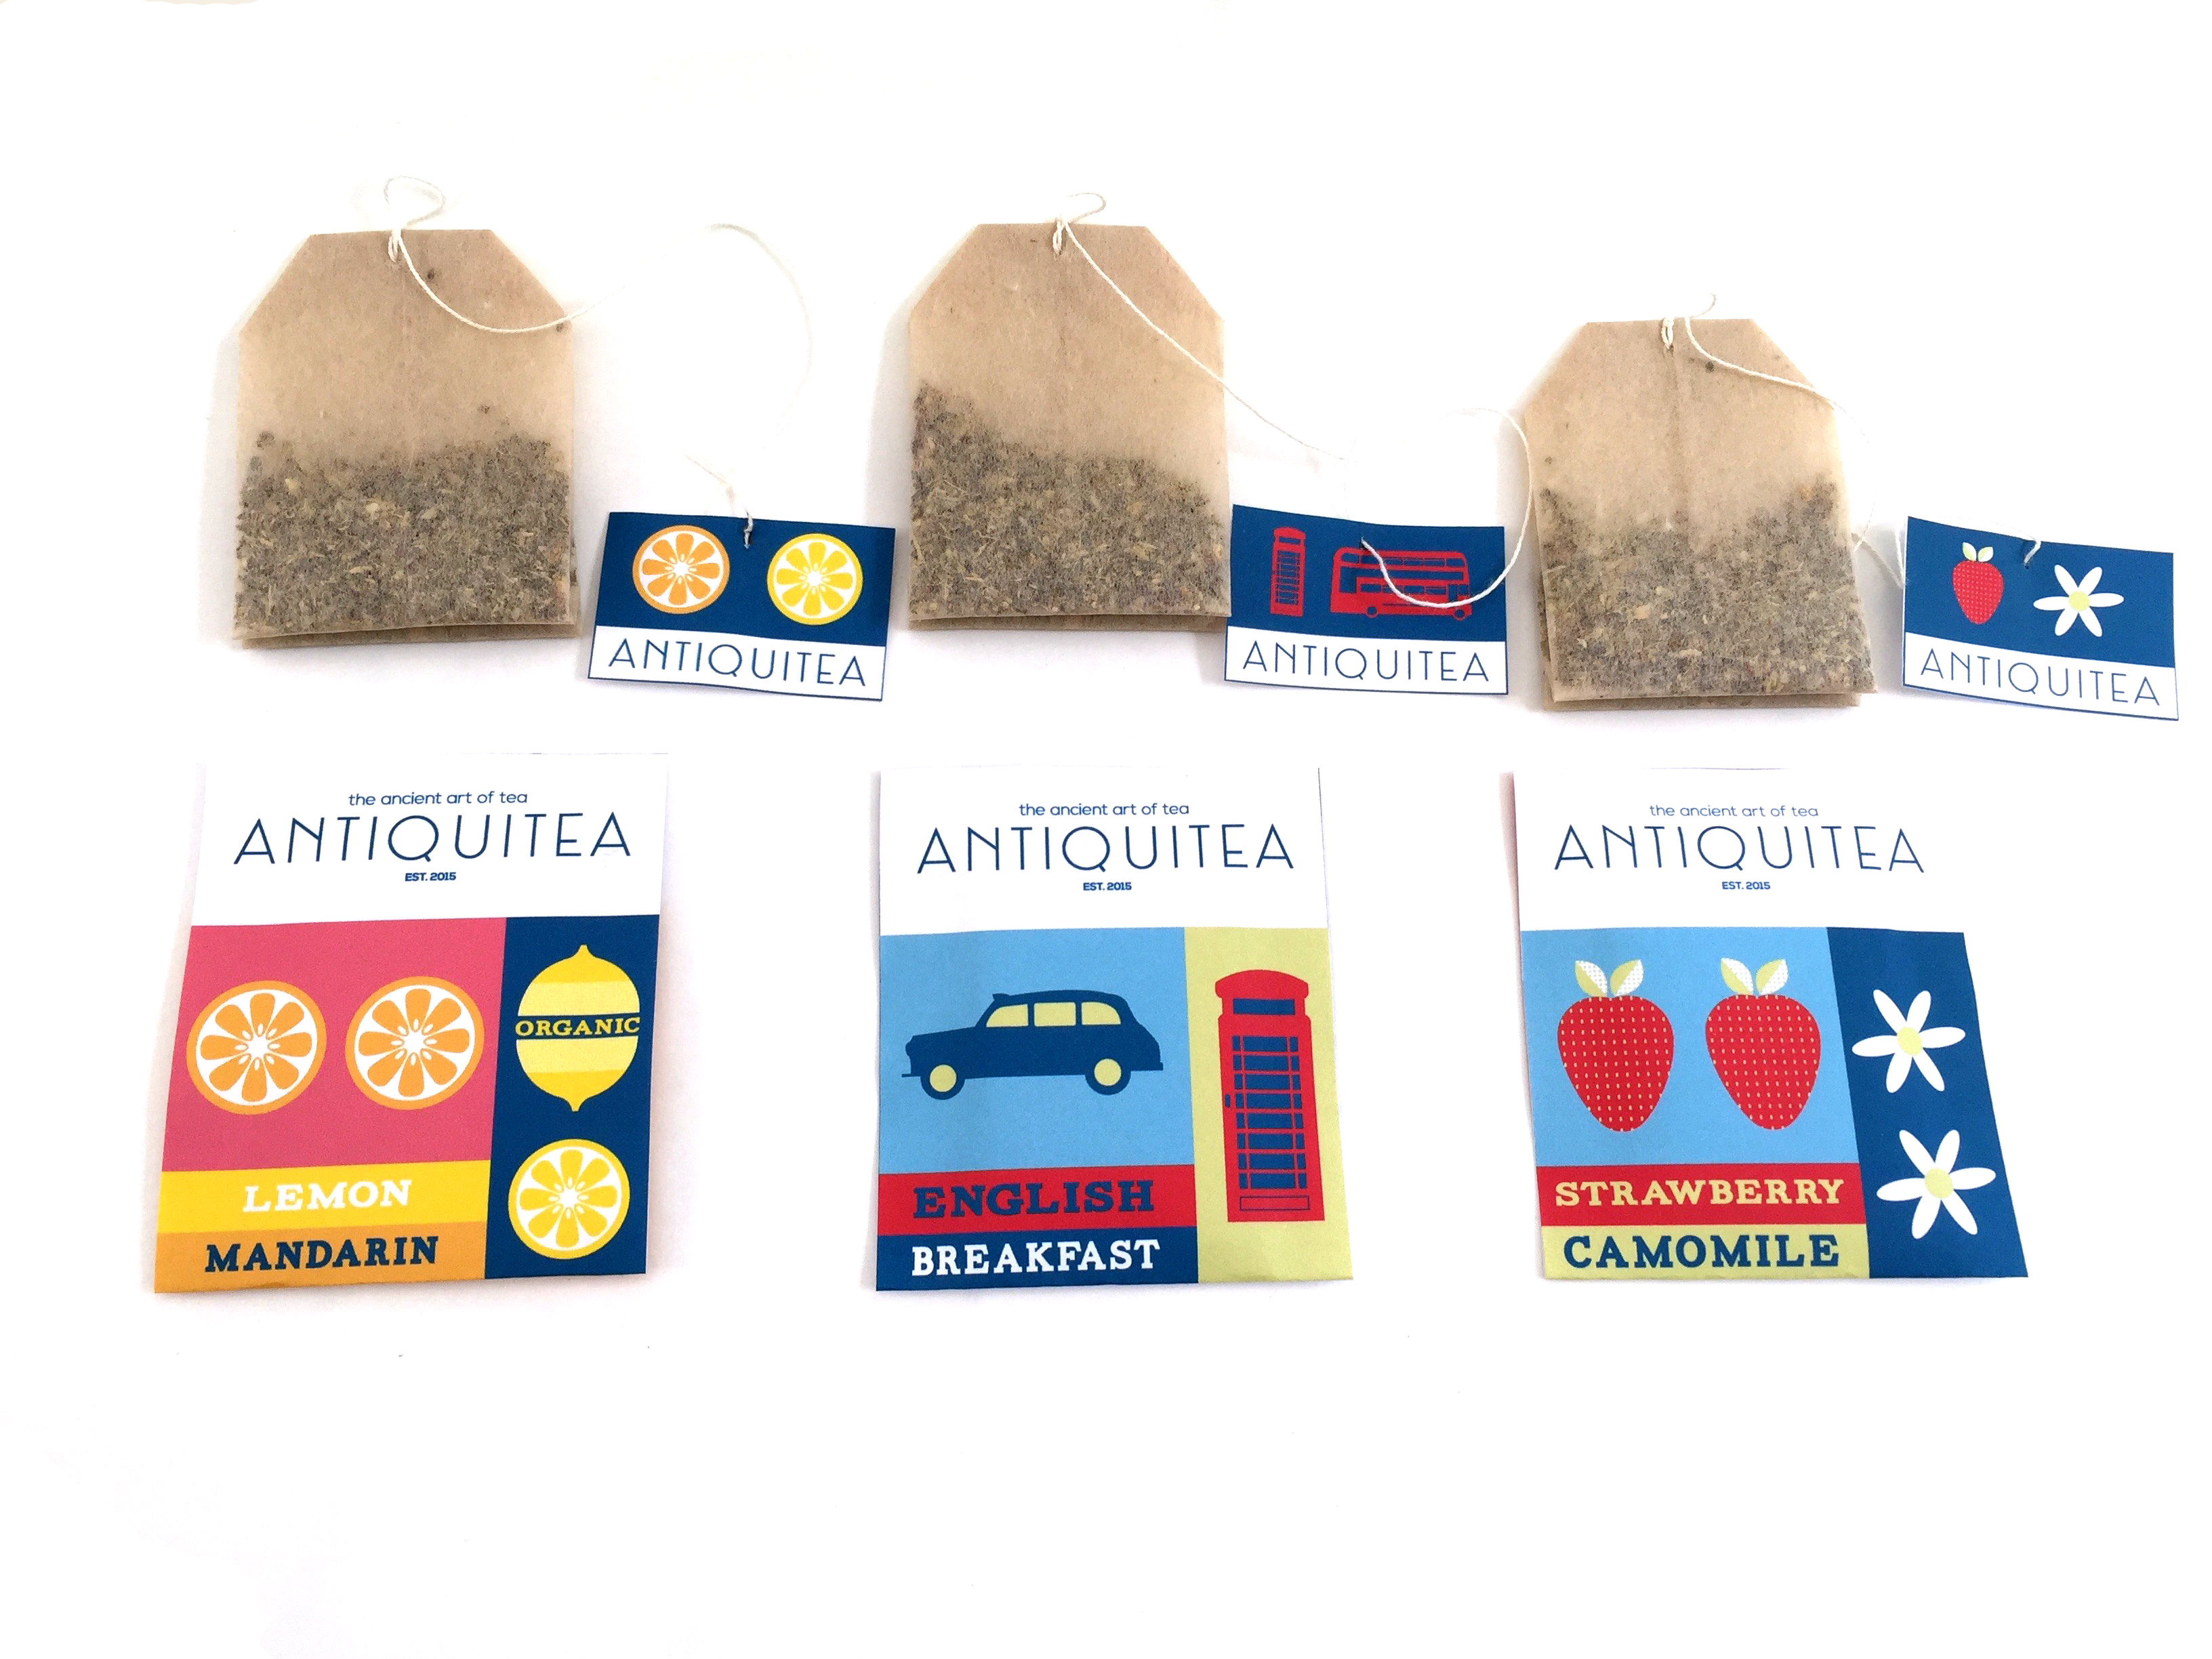 Antiquitea Tea bags front